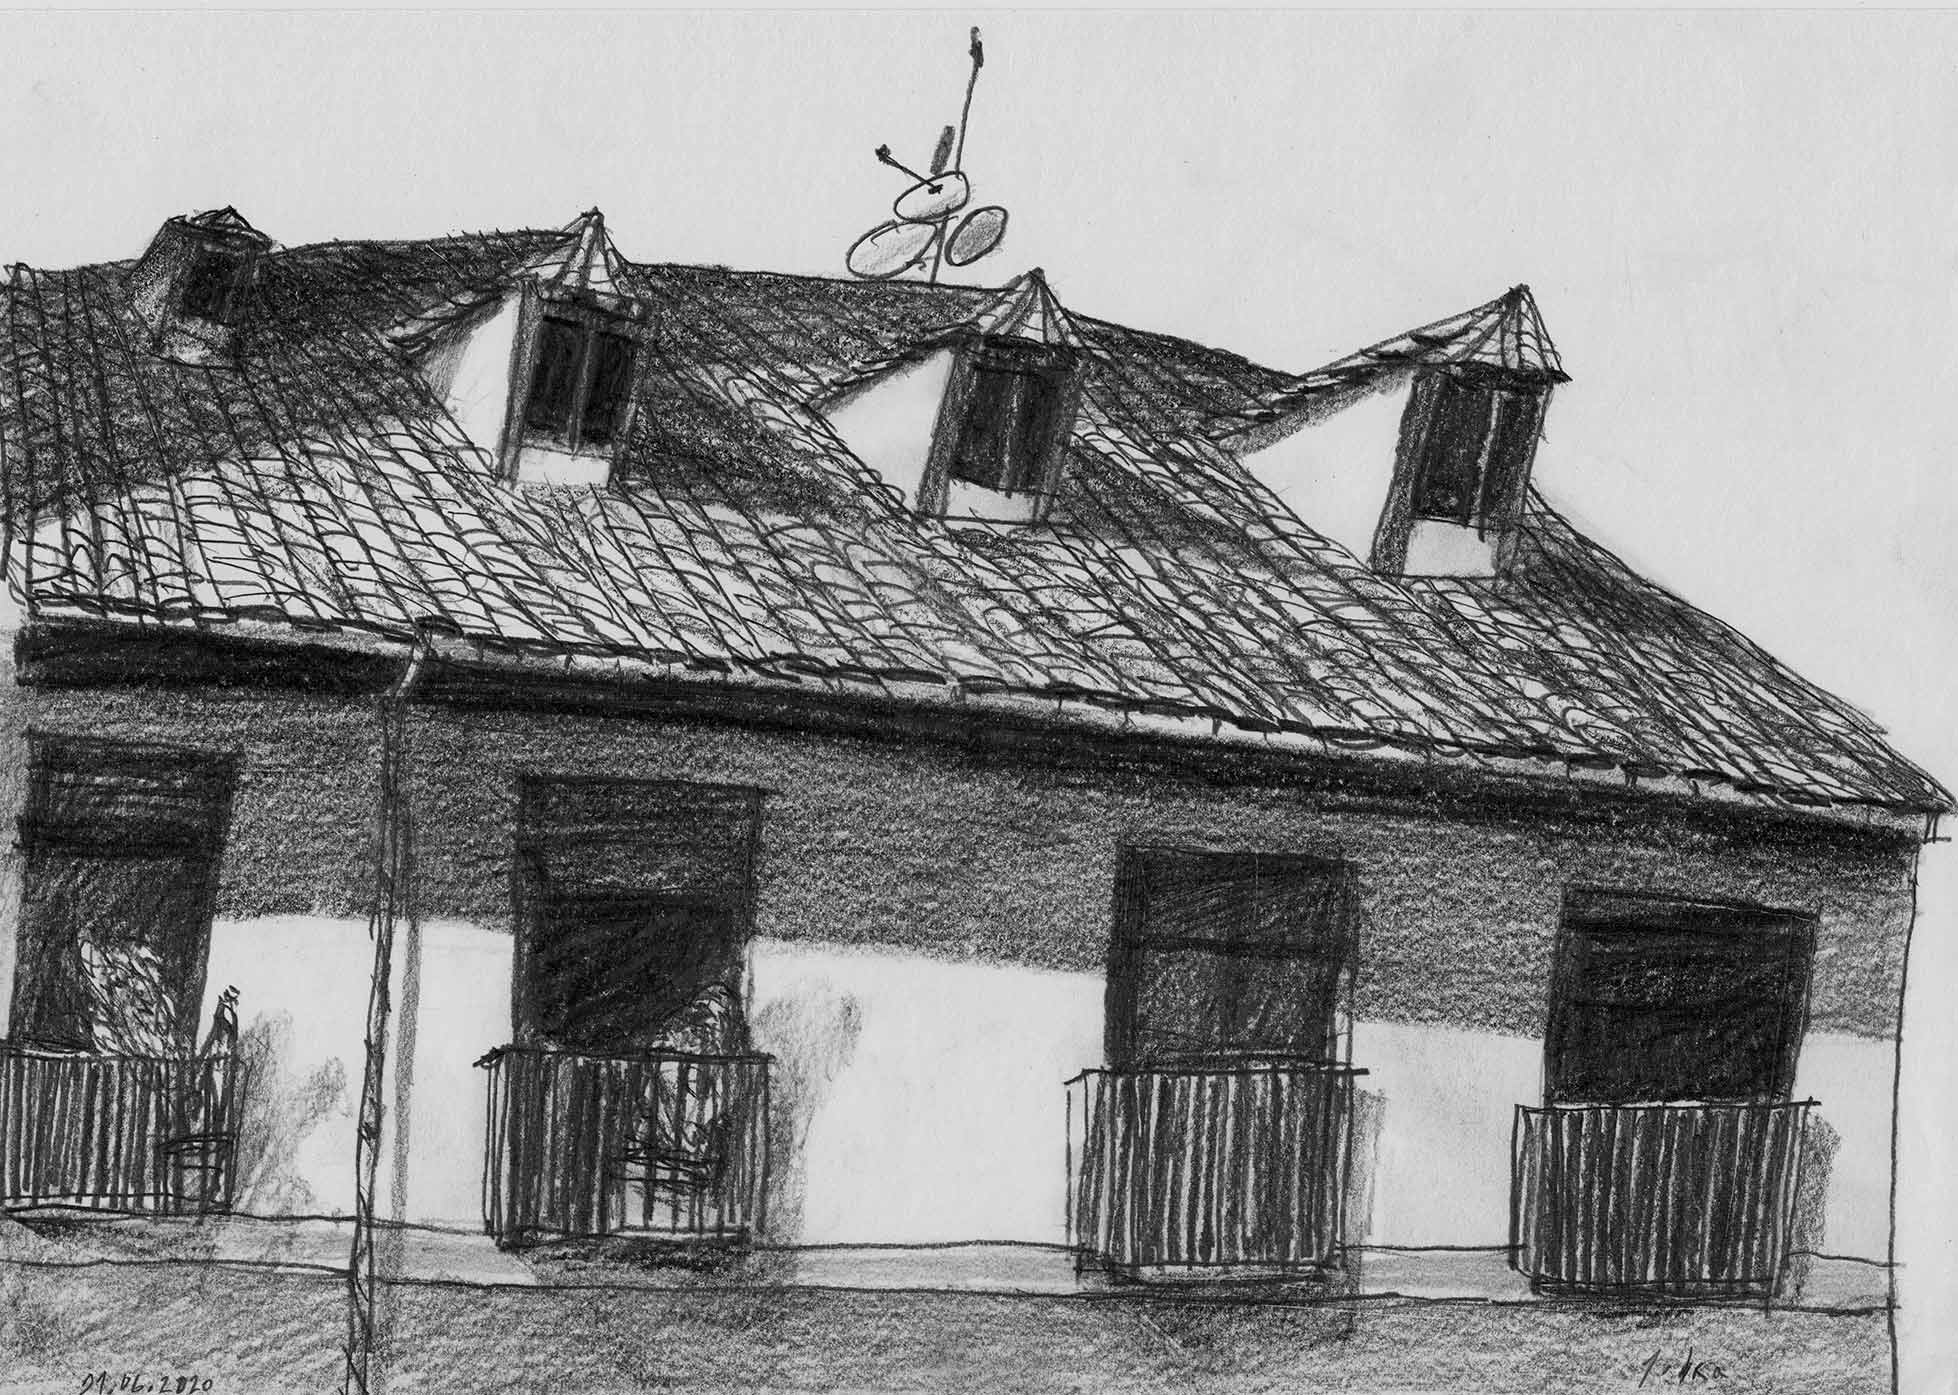 Roofs. Drawing. Pencil on paper. Mario Jodra 2020